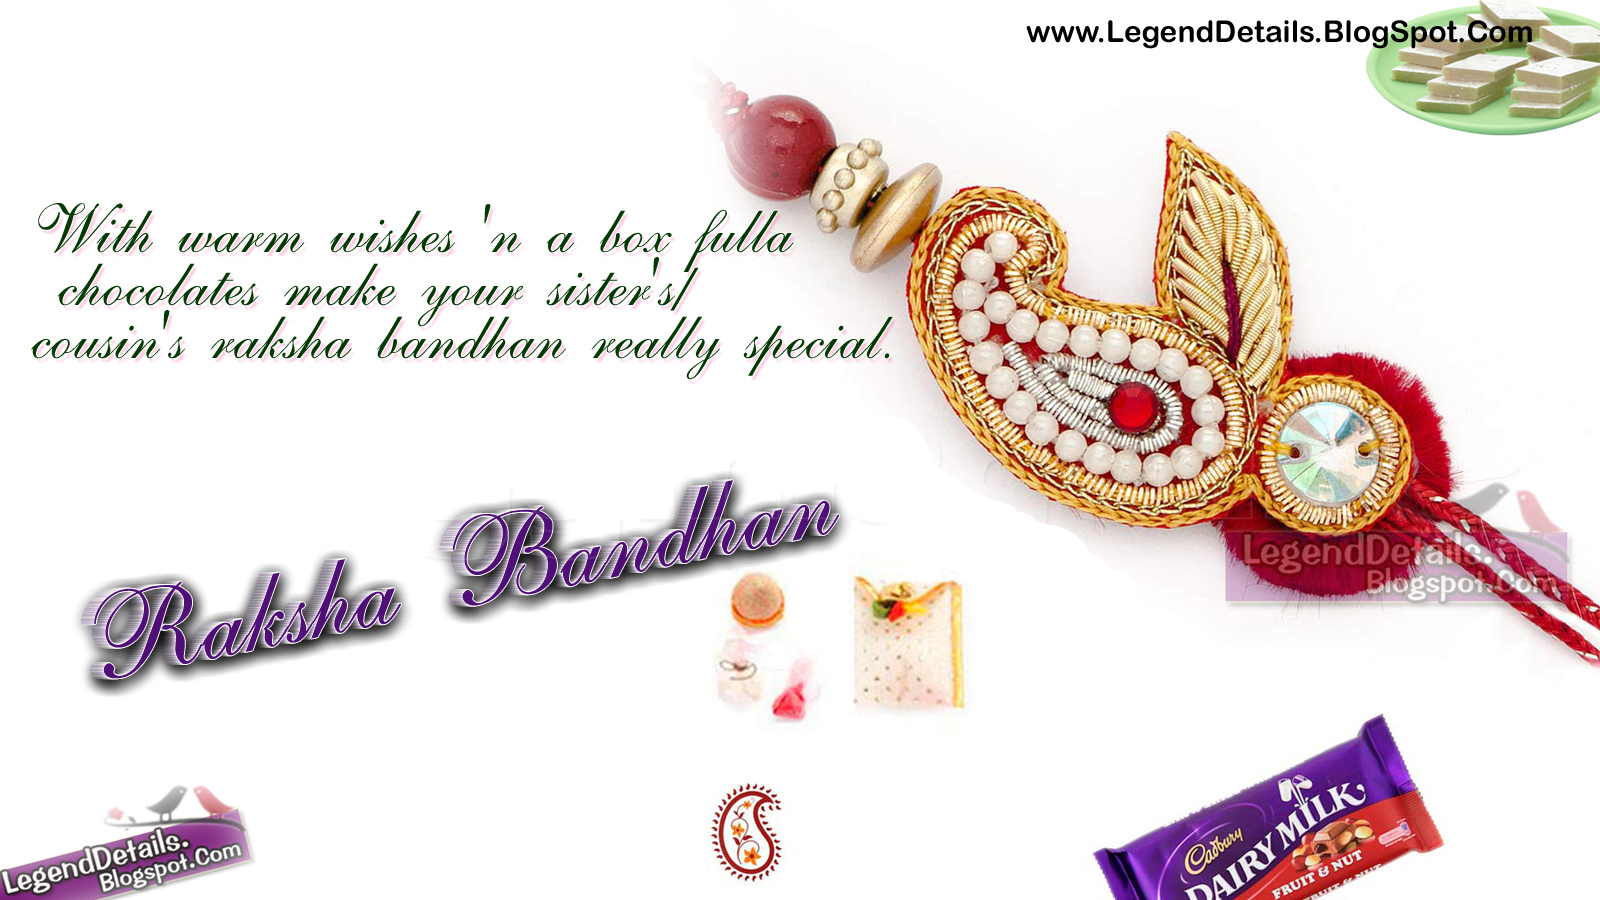 Raksha bandhan wishes quotes in english legendary quotes raksha bandhan wishes quotes in english kristyandbryce Image collections